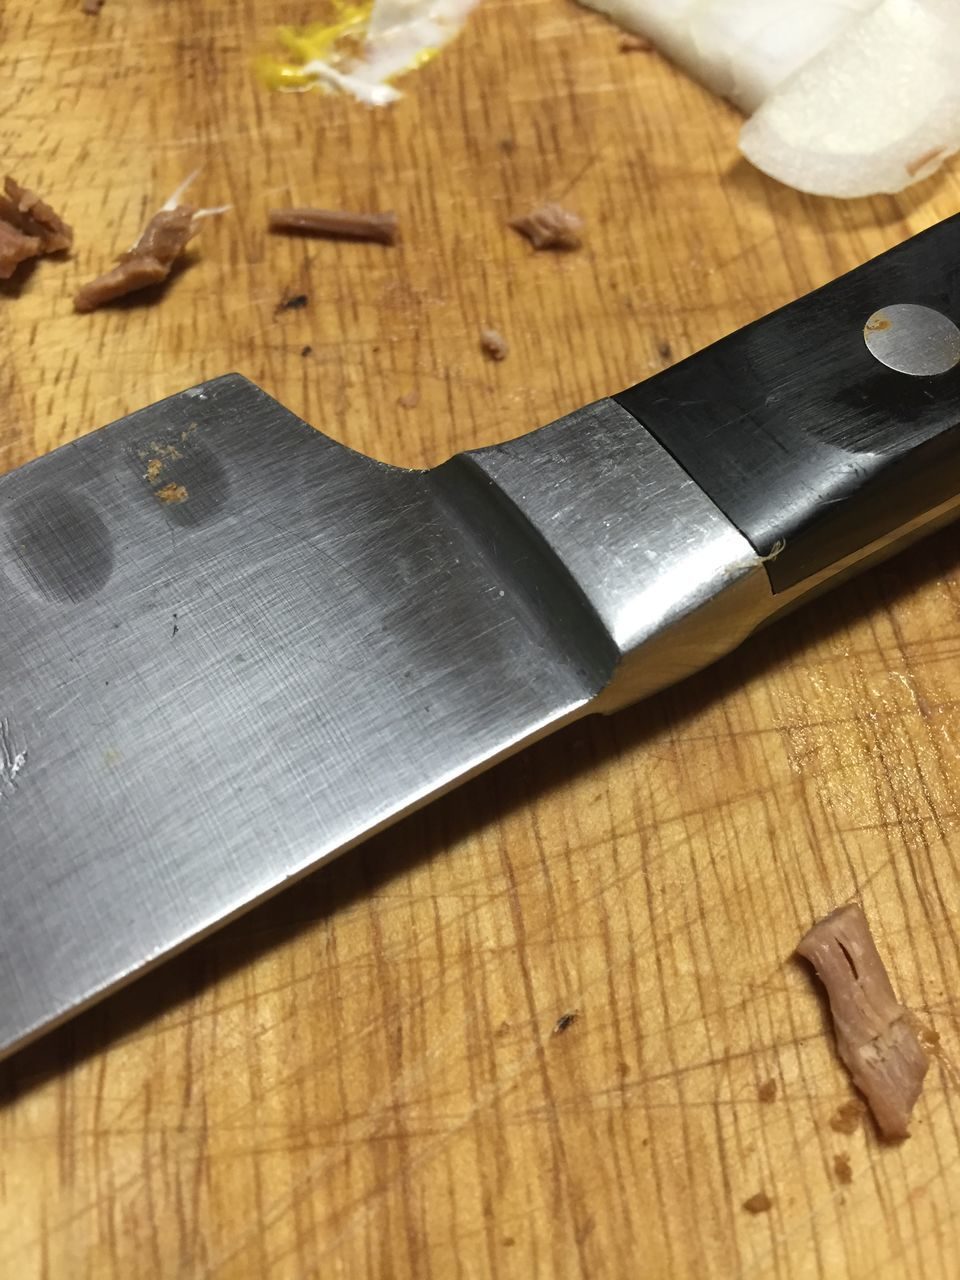 High Angle View Of Knife On Wooden Table